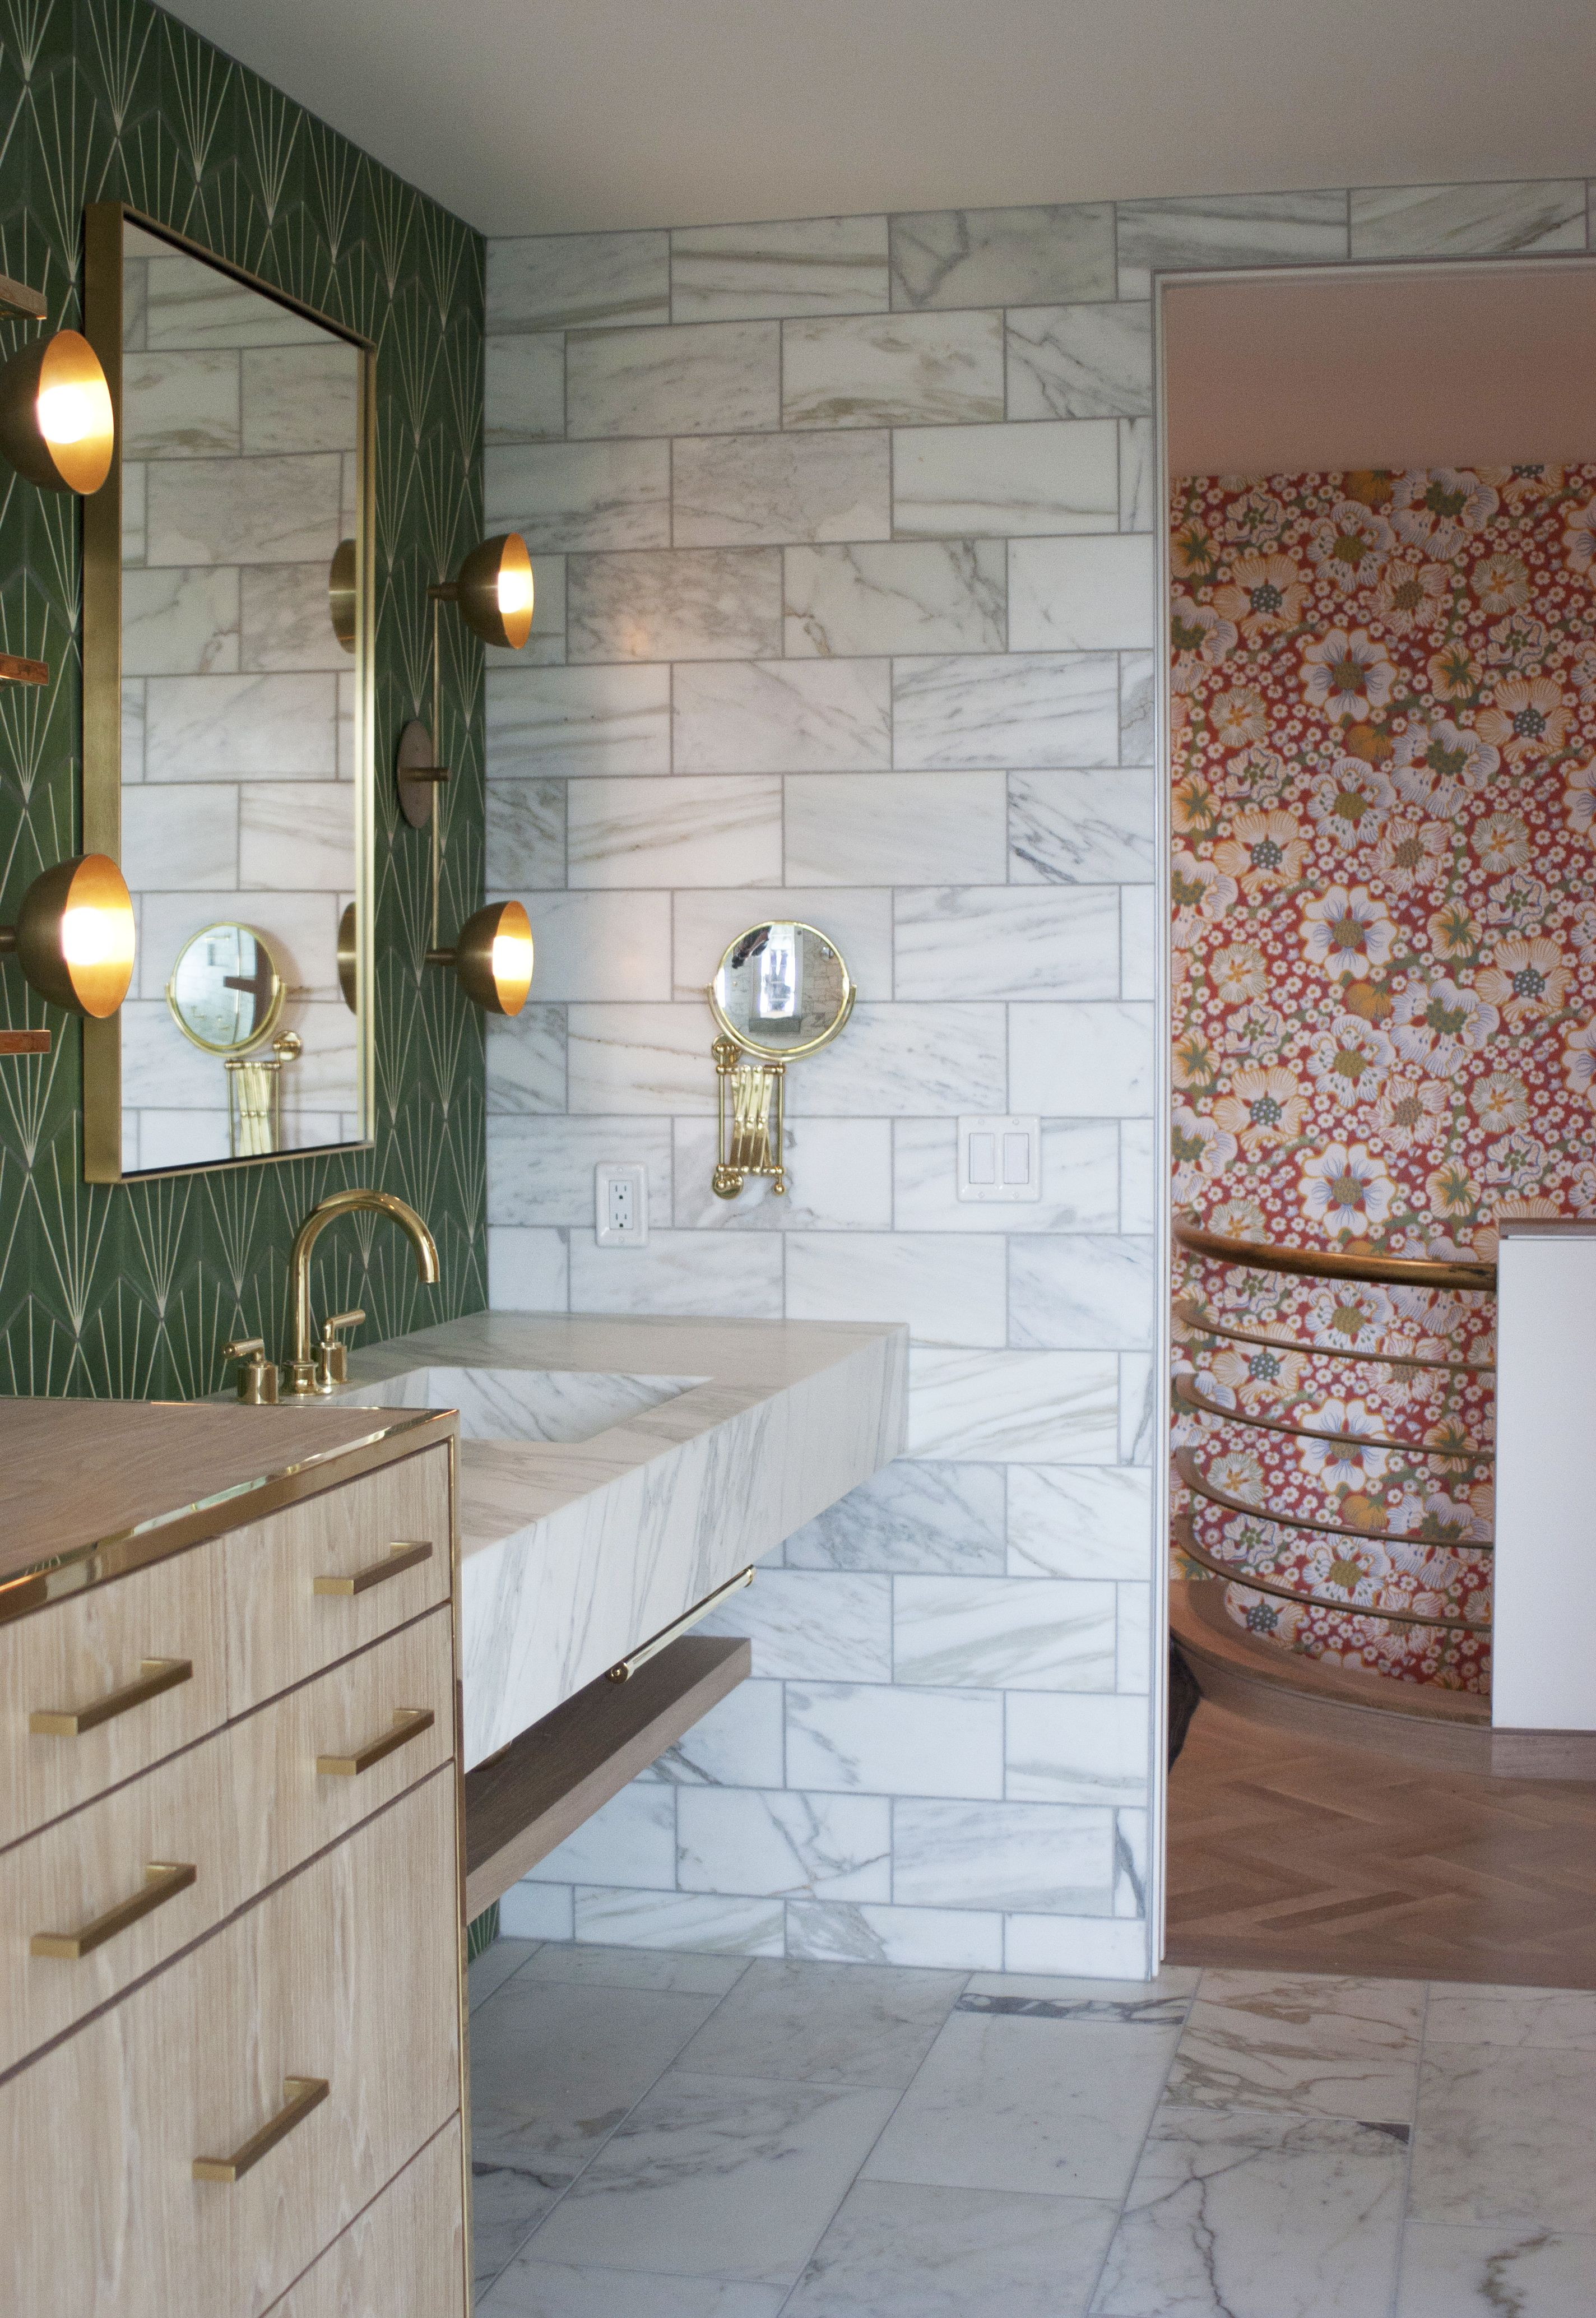 Marble, green cement tiles, wallpaper and brass is a